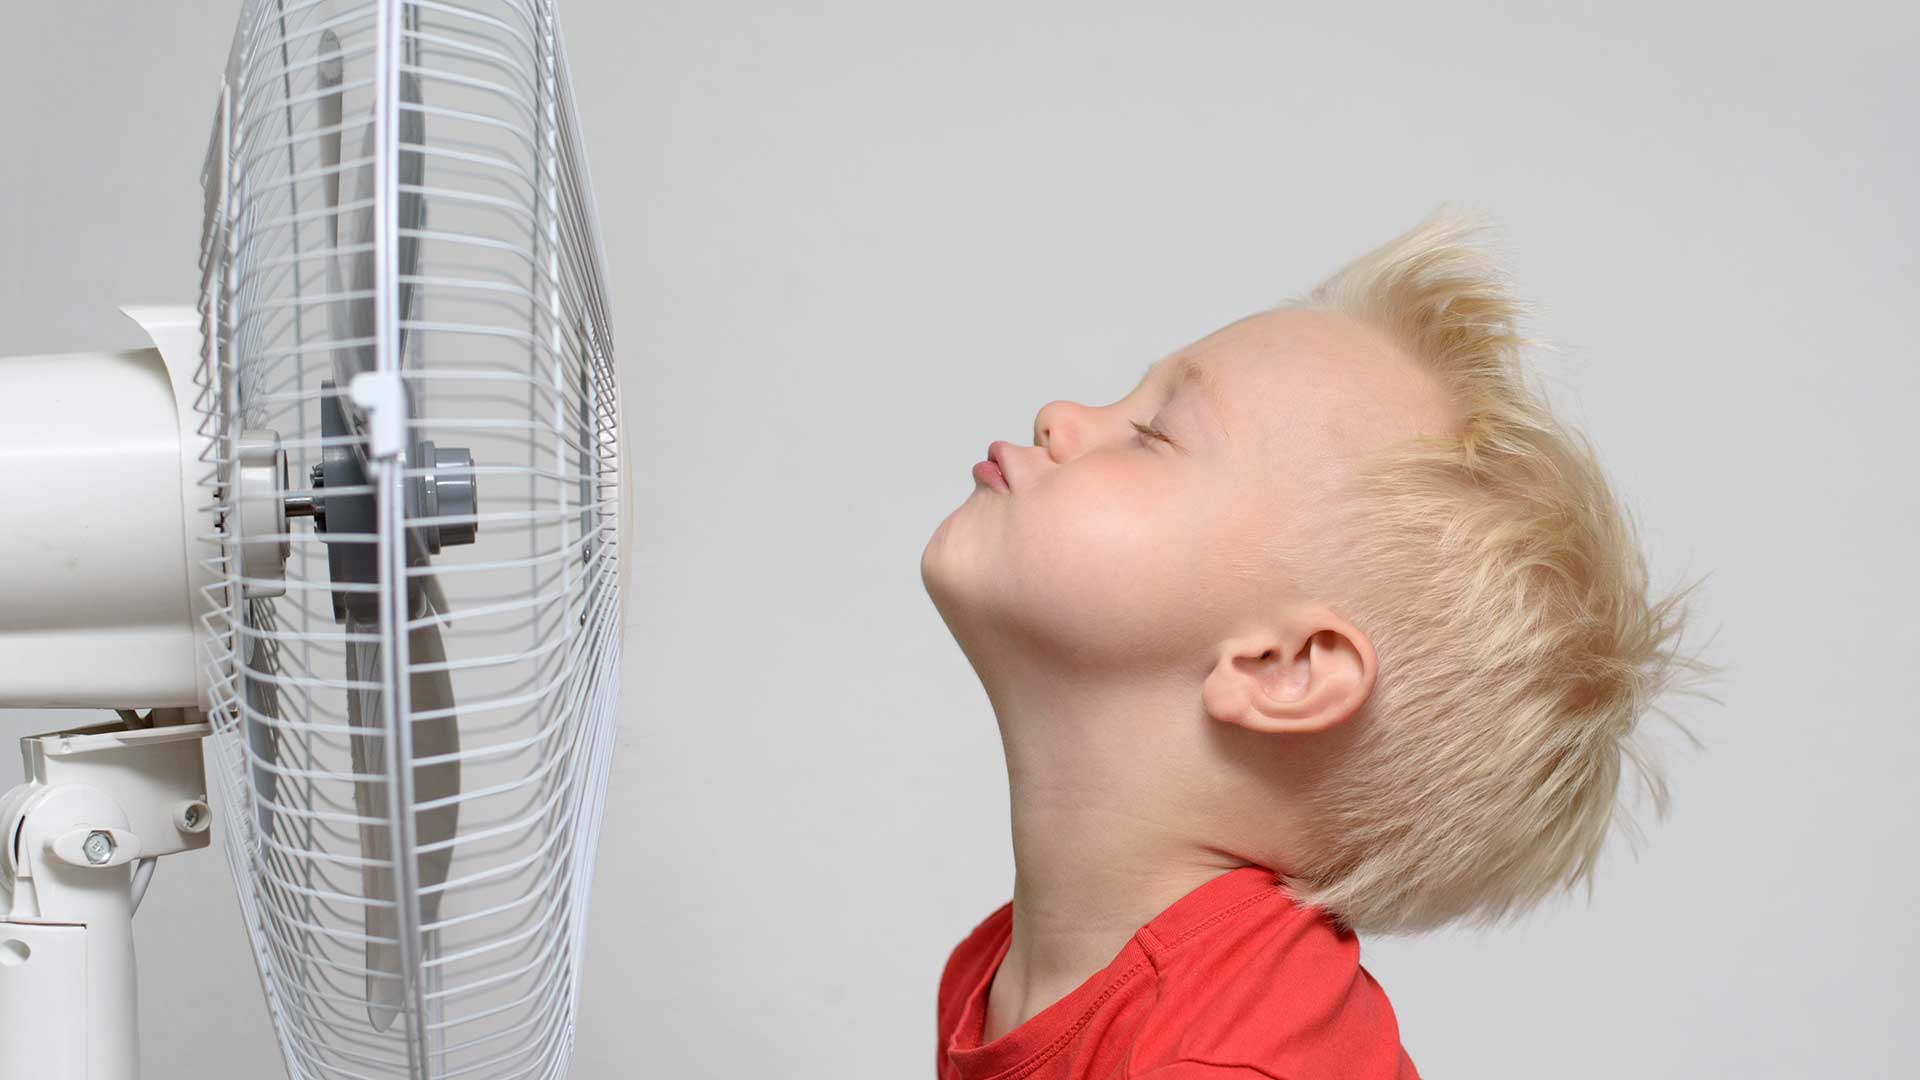 A young boy with his face in fornt of a blowing fan